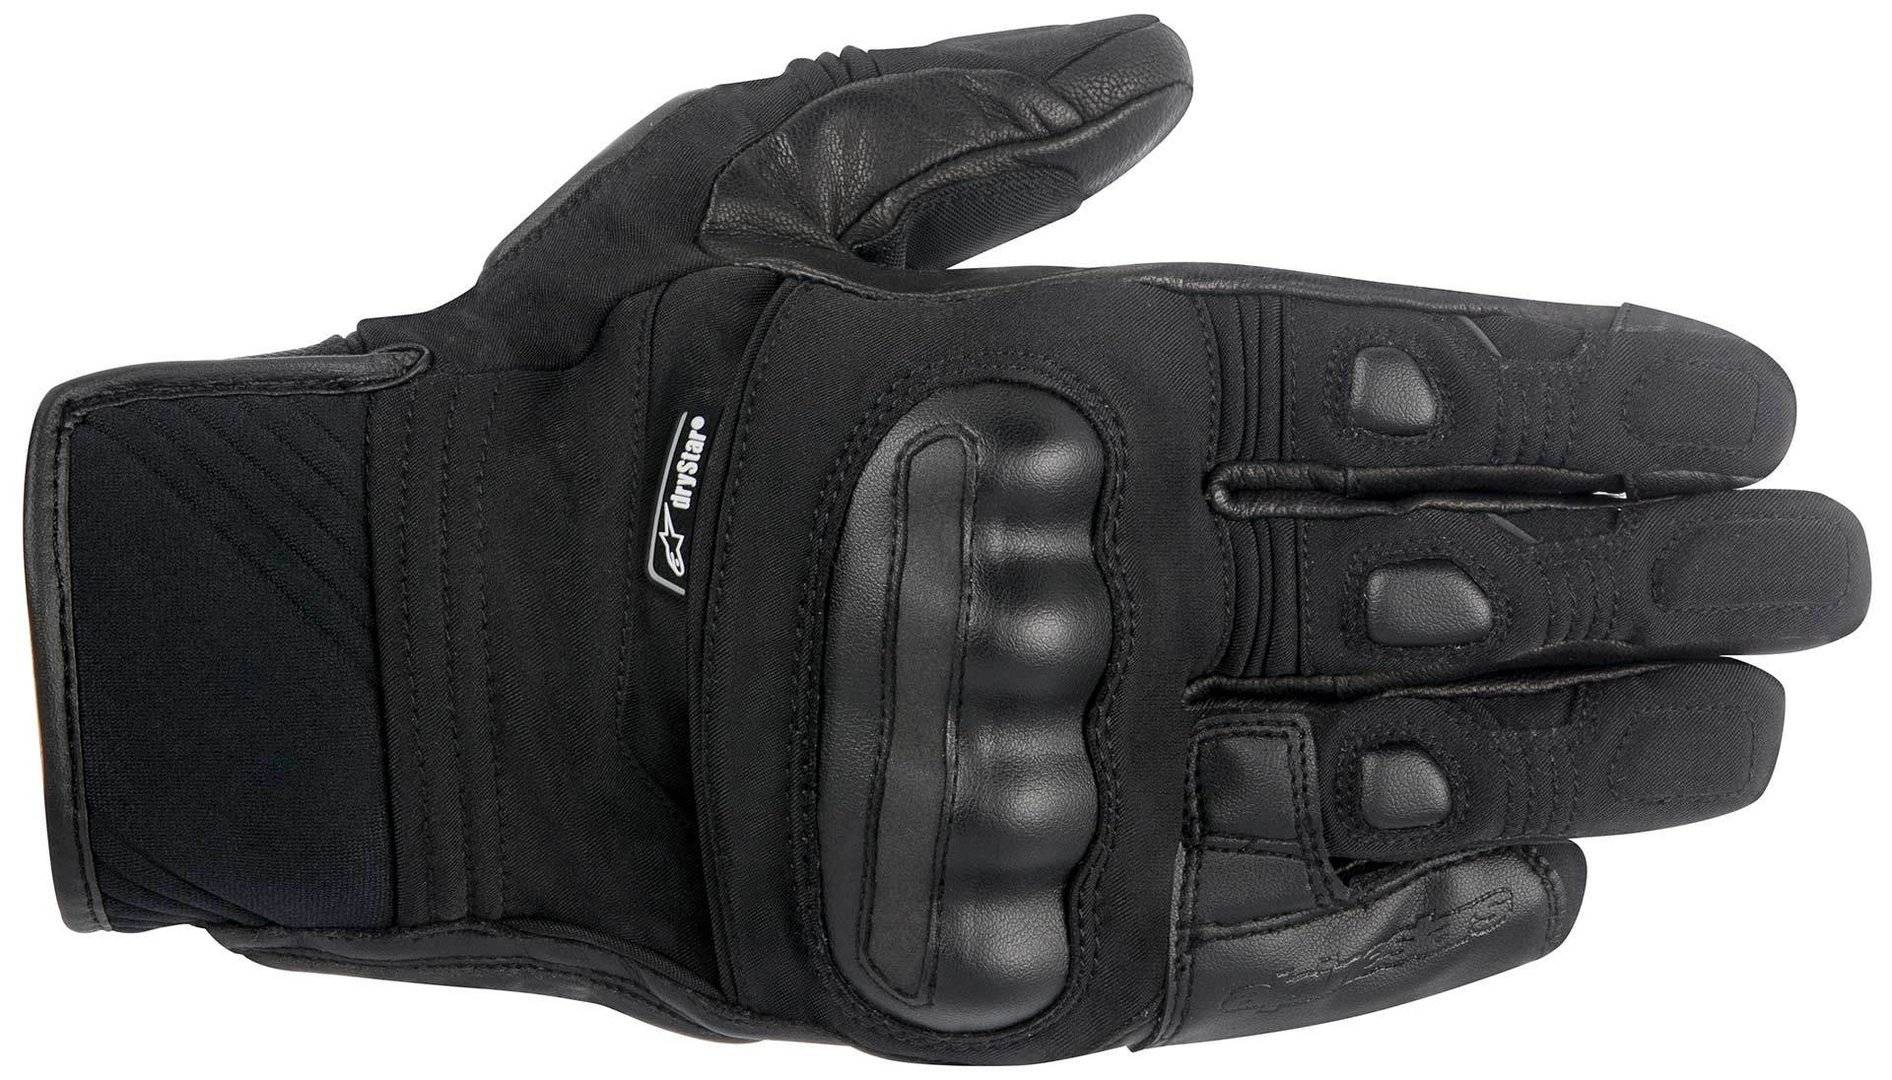 Alpinestars Corozal DryStar Waterproof Gloves Black 3XL